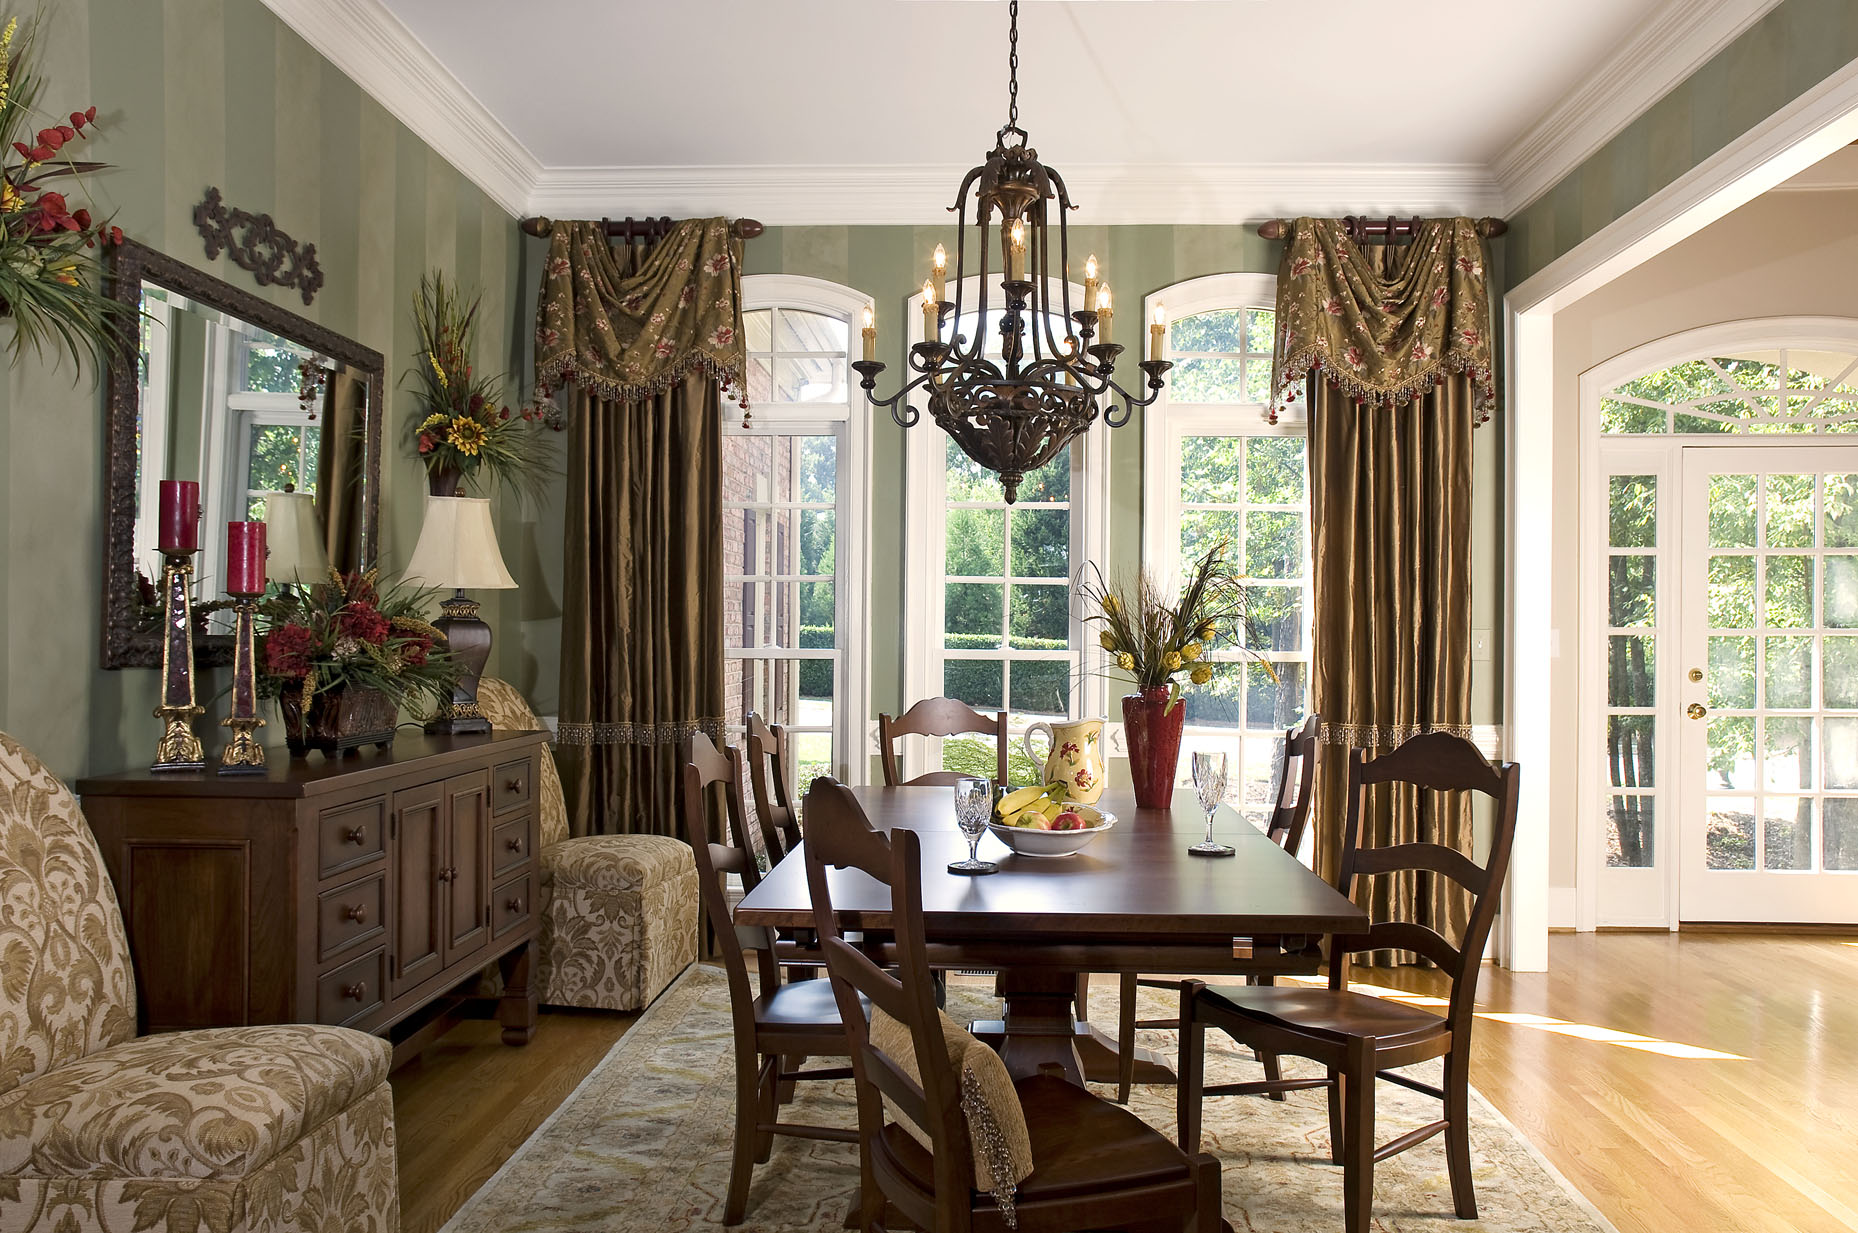 Decorating den interiors blog interior decorating and for Traditional formal dining room ideas